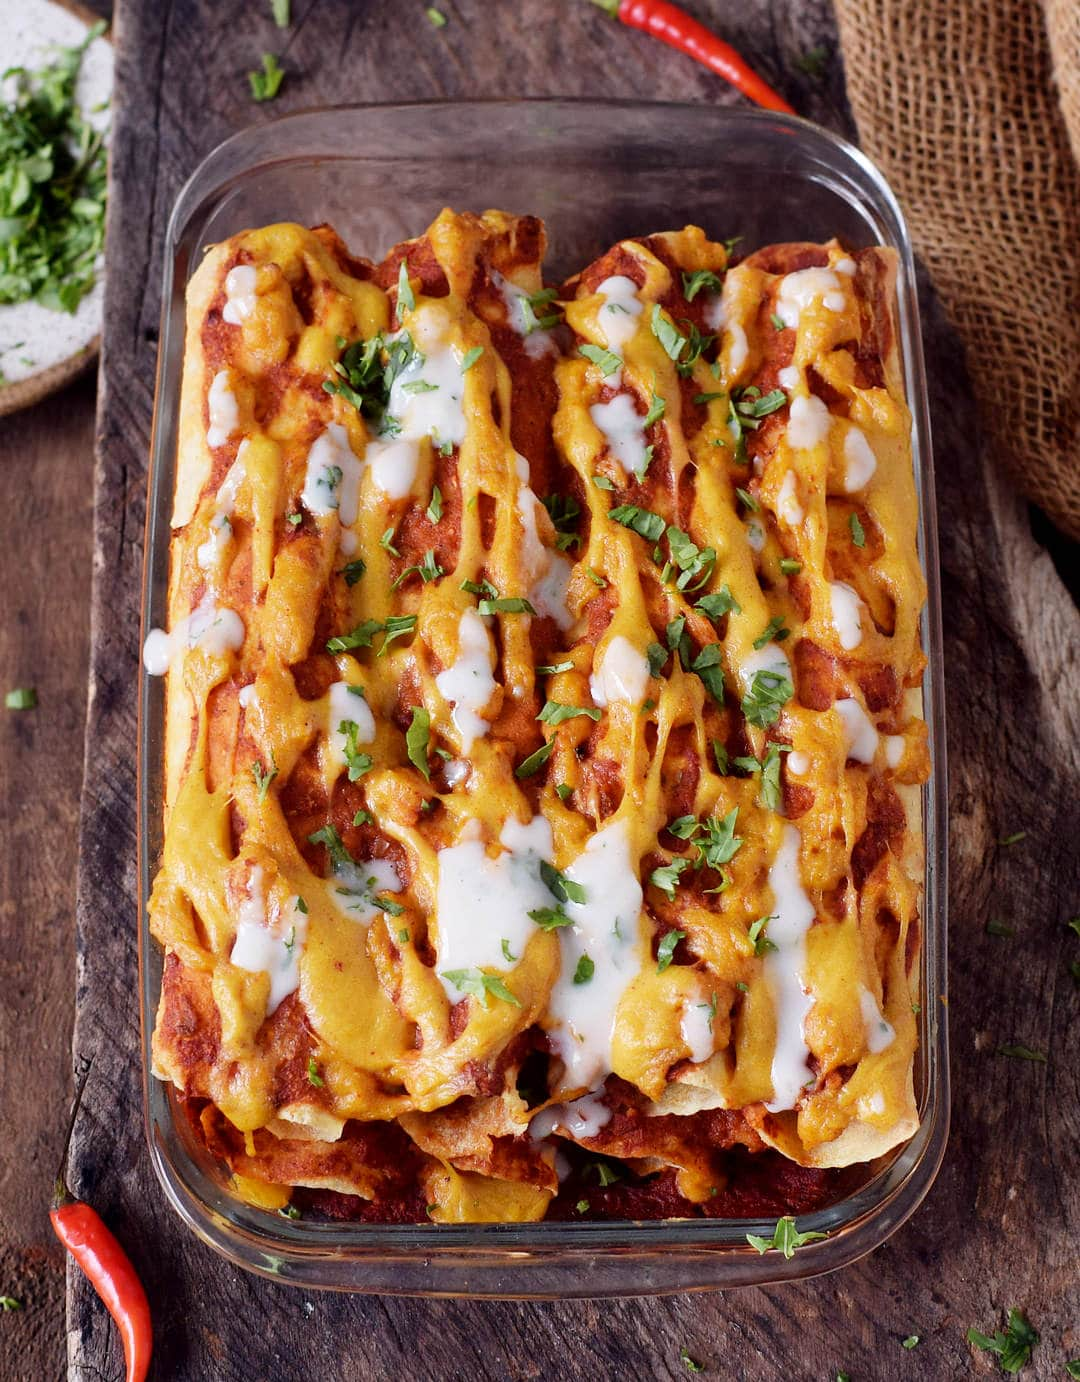 These protein-rich vegan enchiladas are made with lentils and other wholesome ingredients. They are gluten-free, plant-based, healthy, easy to make, nut-free, perfect for lunch or dinner and very tasty.